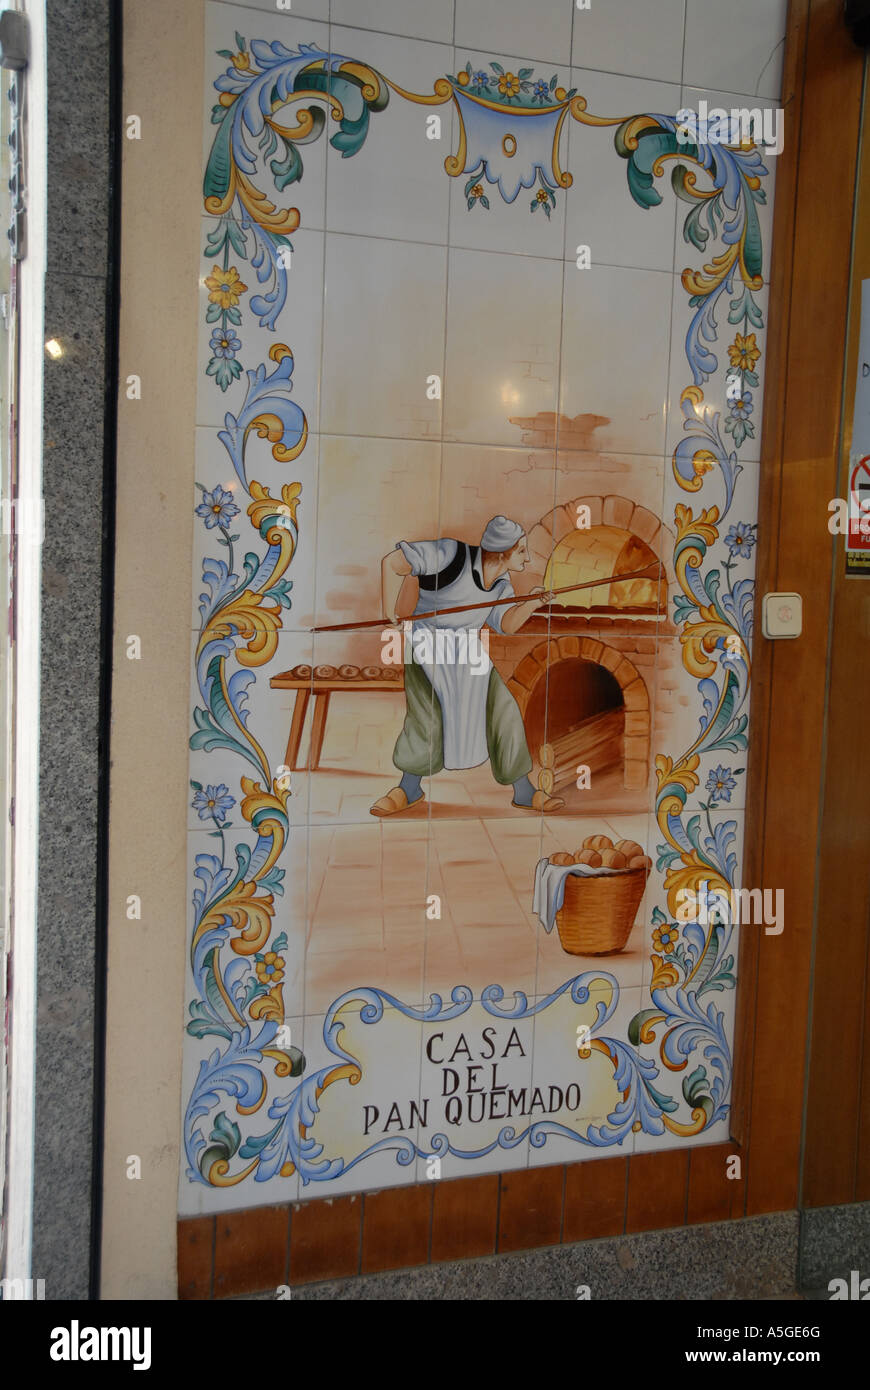 Ceramic mural in a bakers shop valencia spain valerncia is the ceramic mural in a bakers shop valencia spain valerncia is the centre for ceramic tile manufacturing dailygadgetfo Gallery